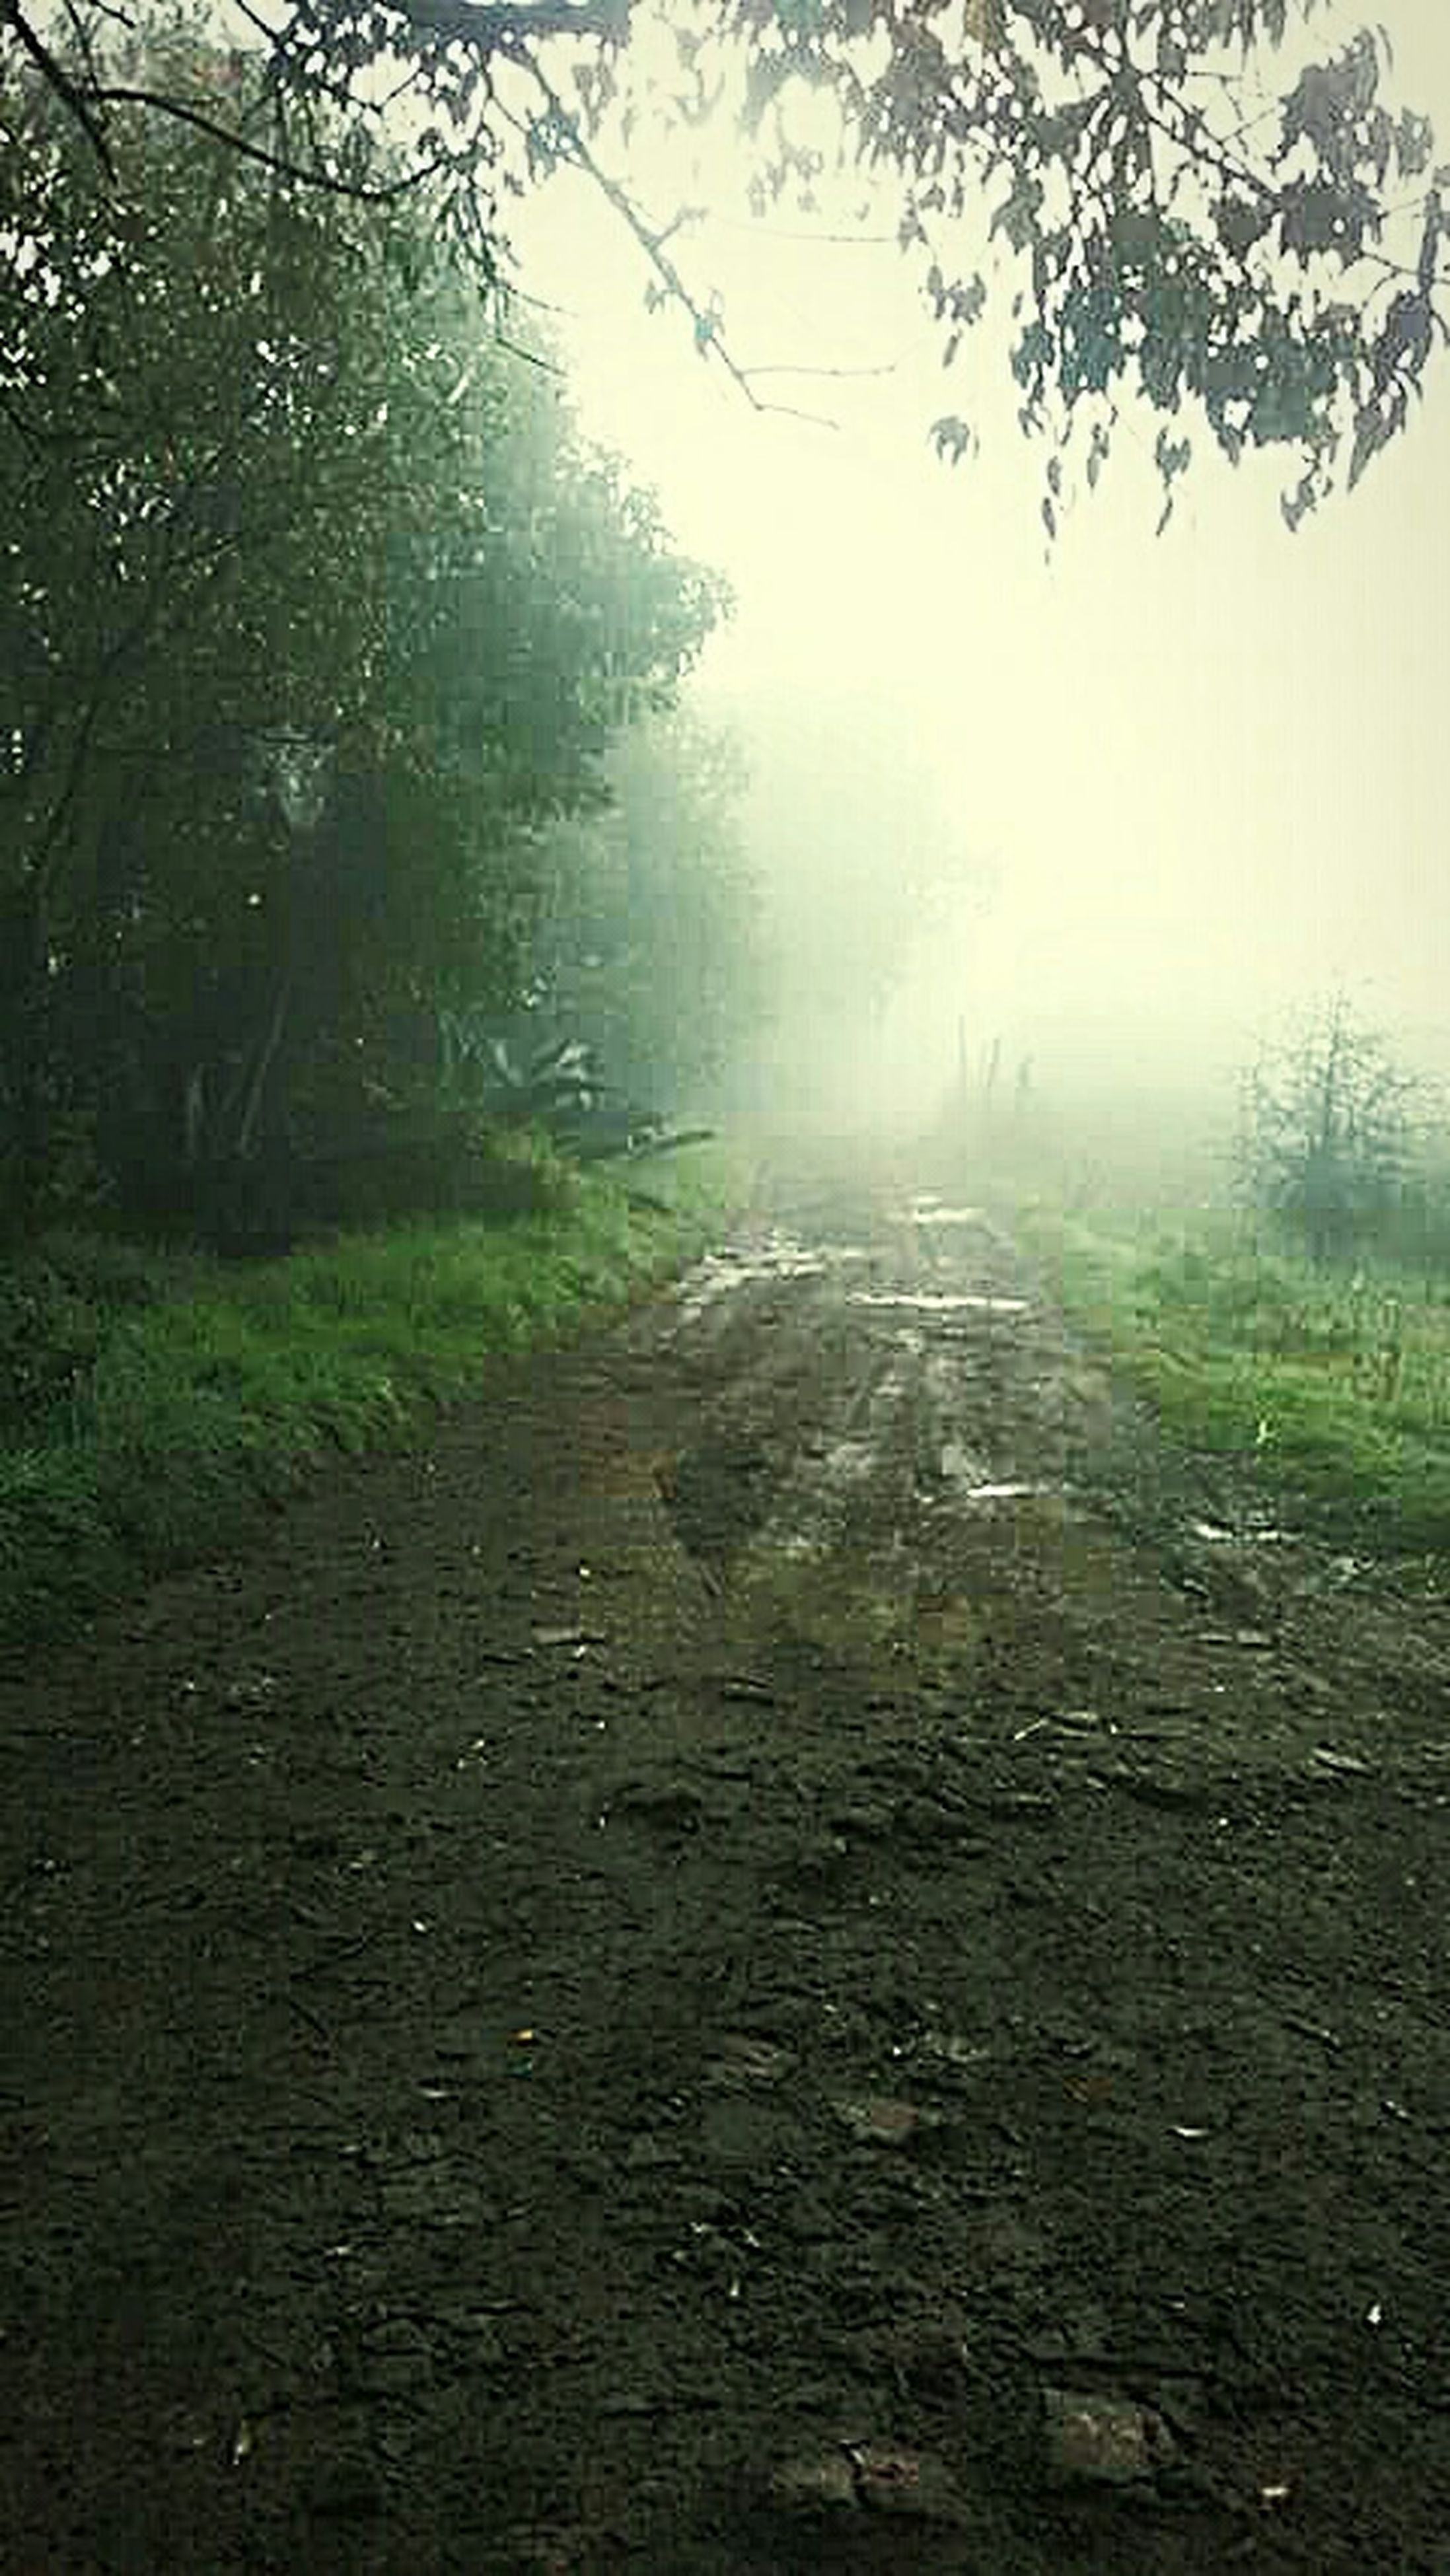 tree, fog, tranquility, the way forward, nature, forest, tranquil scene, foggy, dirt road, beauty in nature, weather, branch, scenics, day, landscape, road, growth, non-urban scene, no people